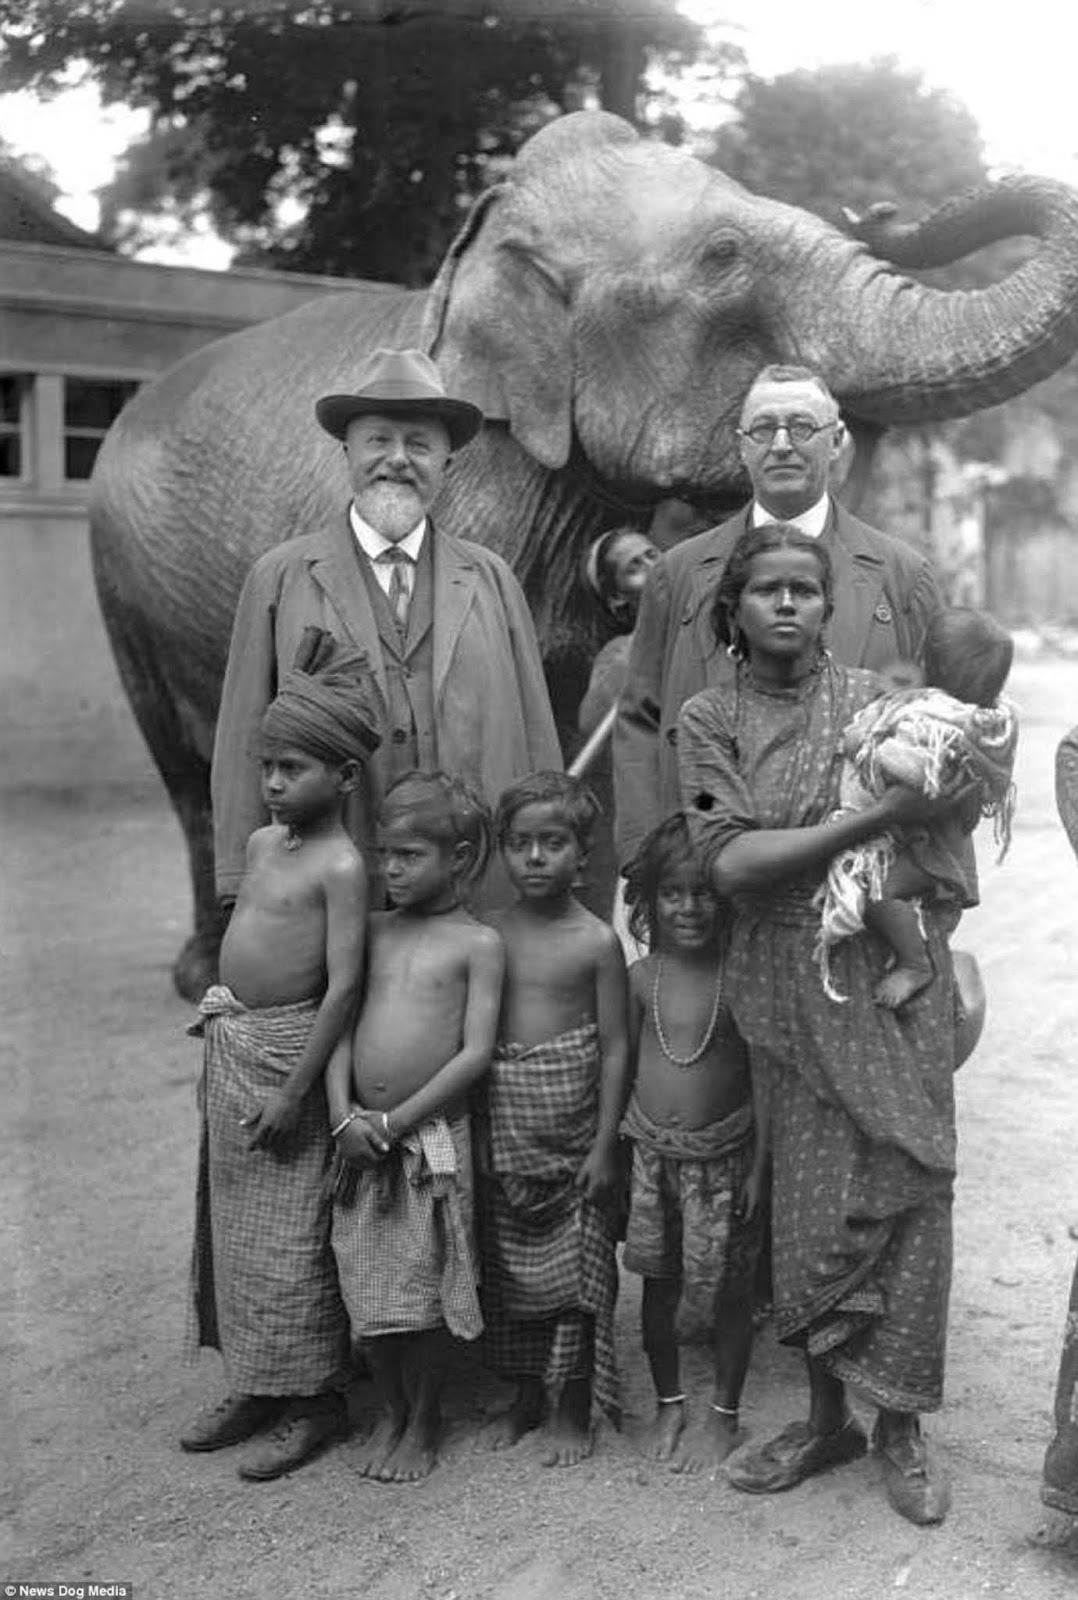 German zoologist Professor Lutz Heck is pictured (left) with an elephant and a family he brought to the Berlin Zoo, in Germany in 1931.